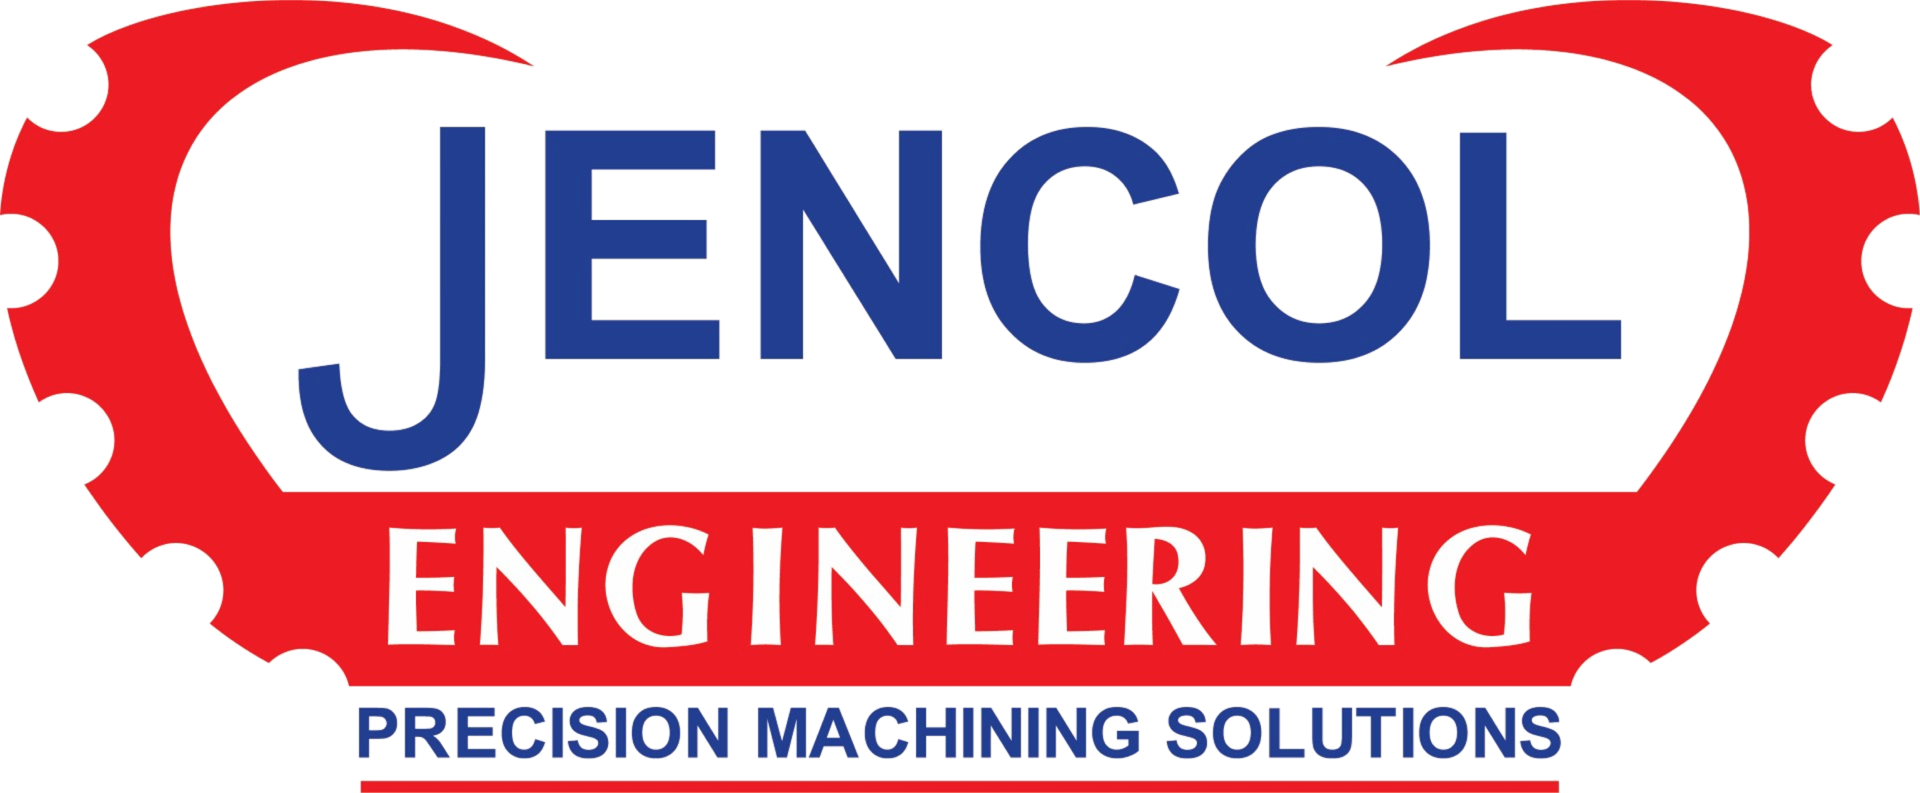 Jencol Engineering